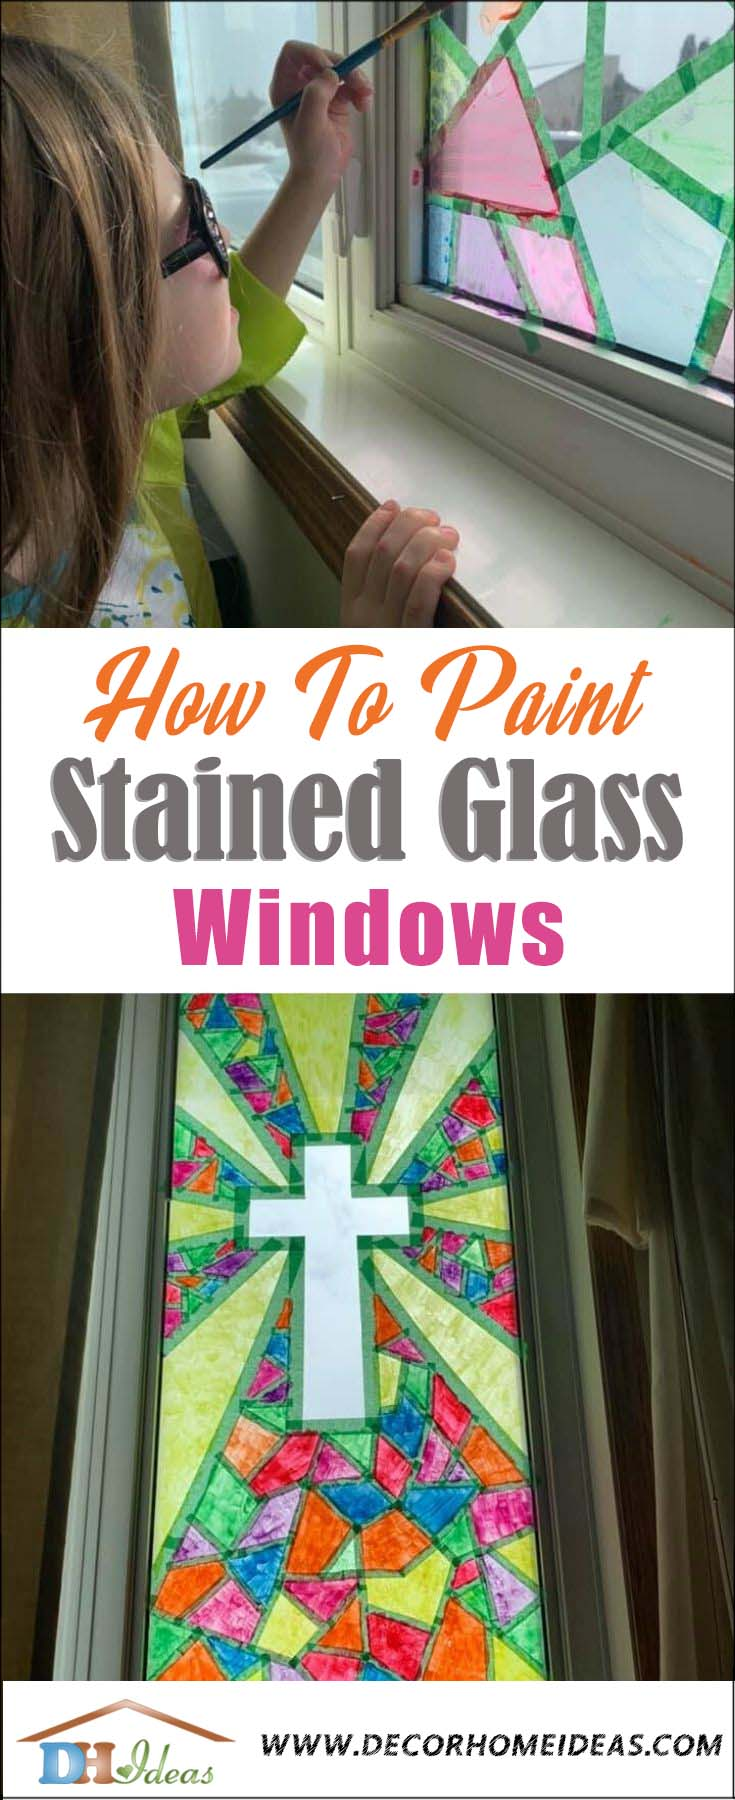 DIY Window Stained Glass Tutorial. How to make your own stained glass windows. #diy #crafts #kids #paint #stain #windows #decorhomeideas